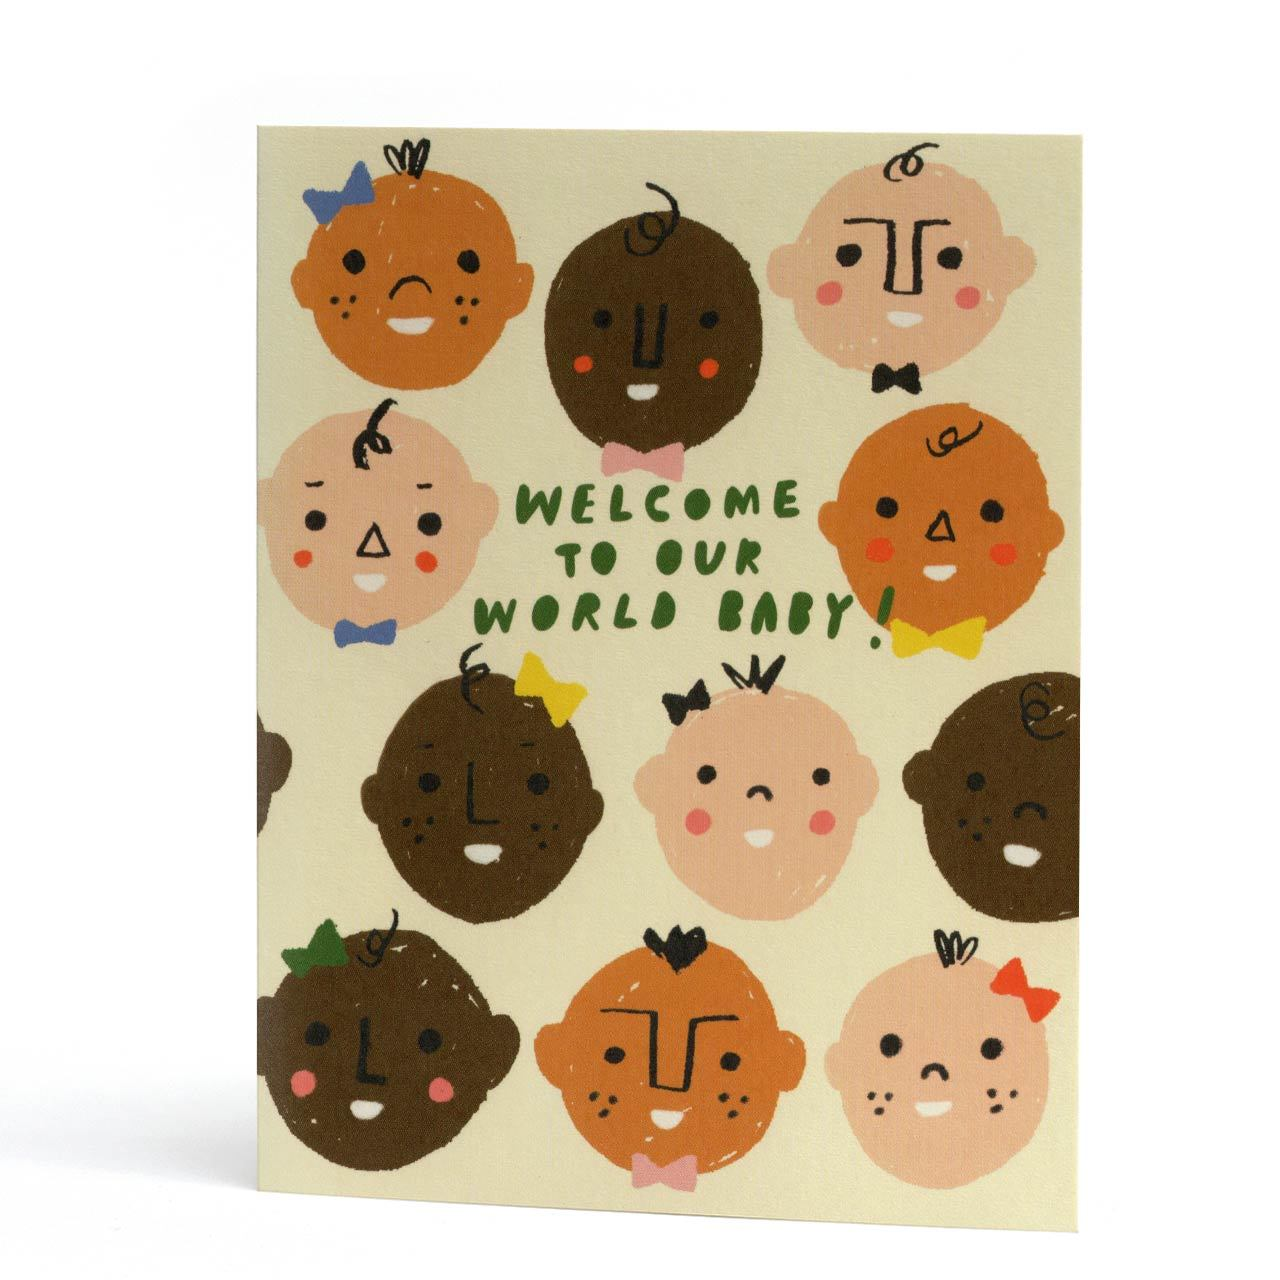 Welcome To Our World Baby Greeting Card